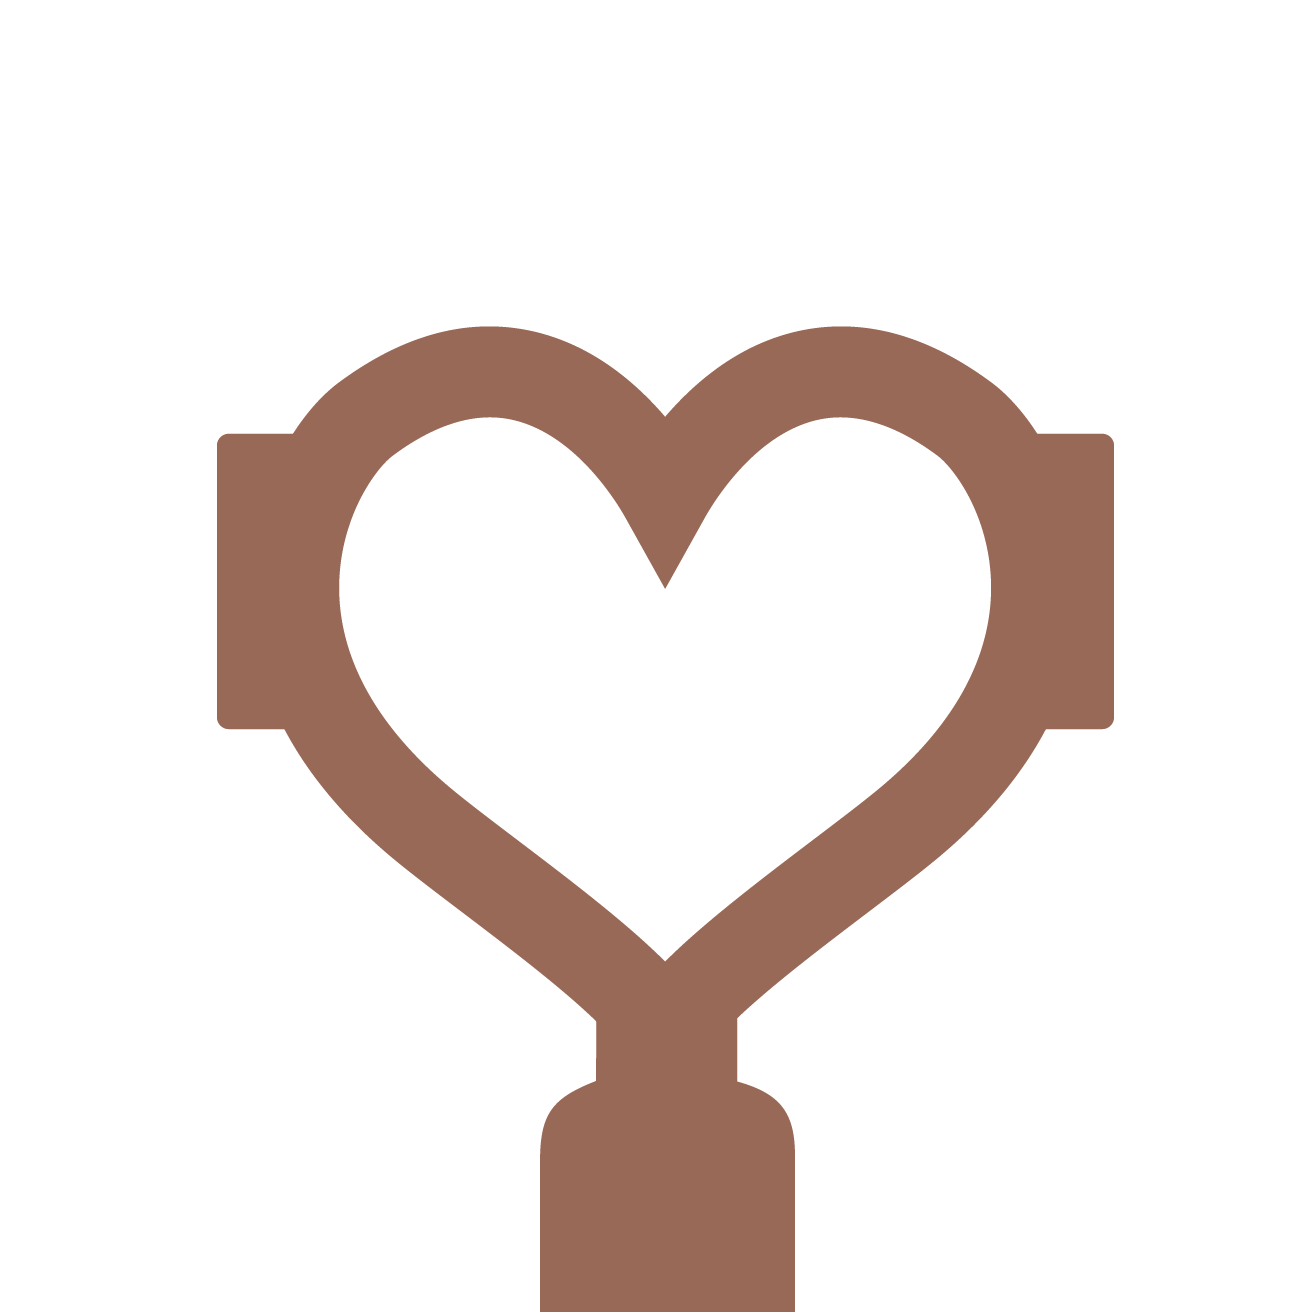 Rancilio Silvia PRO Dual Boiler Machine and Grinder Package Deal